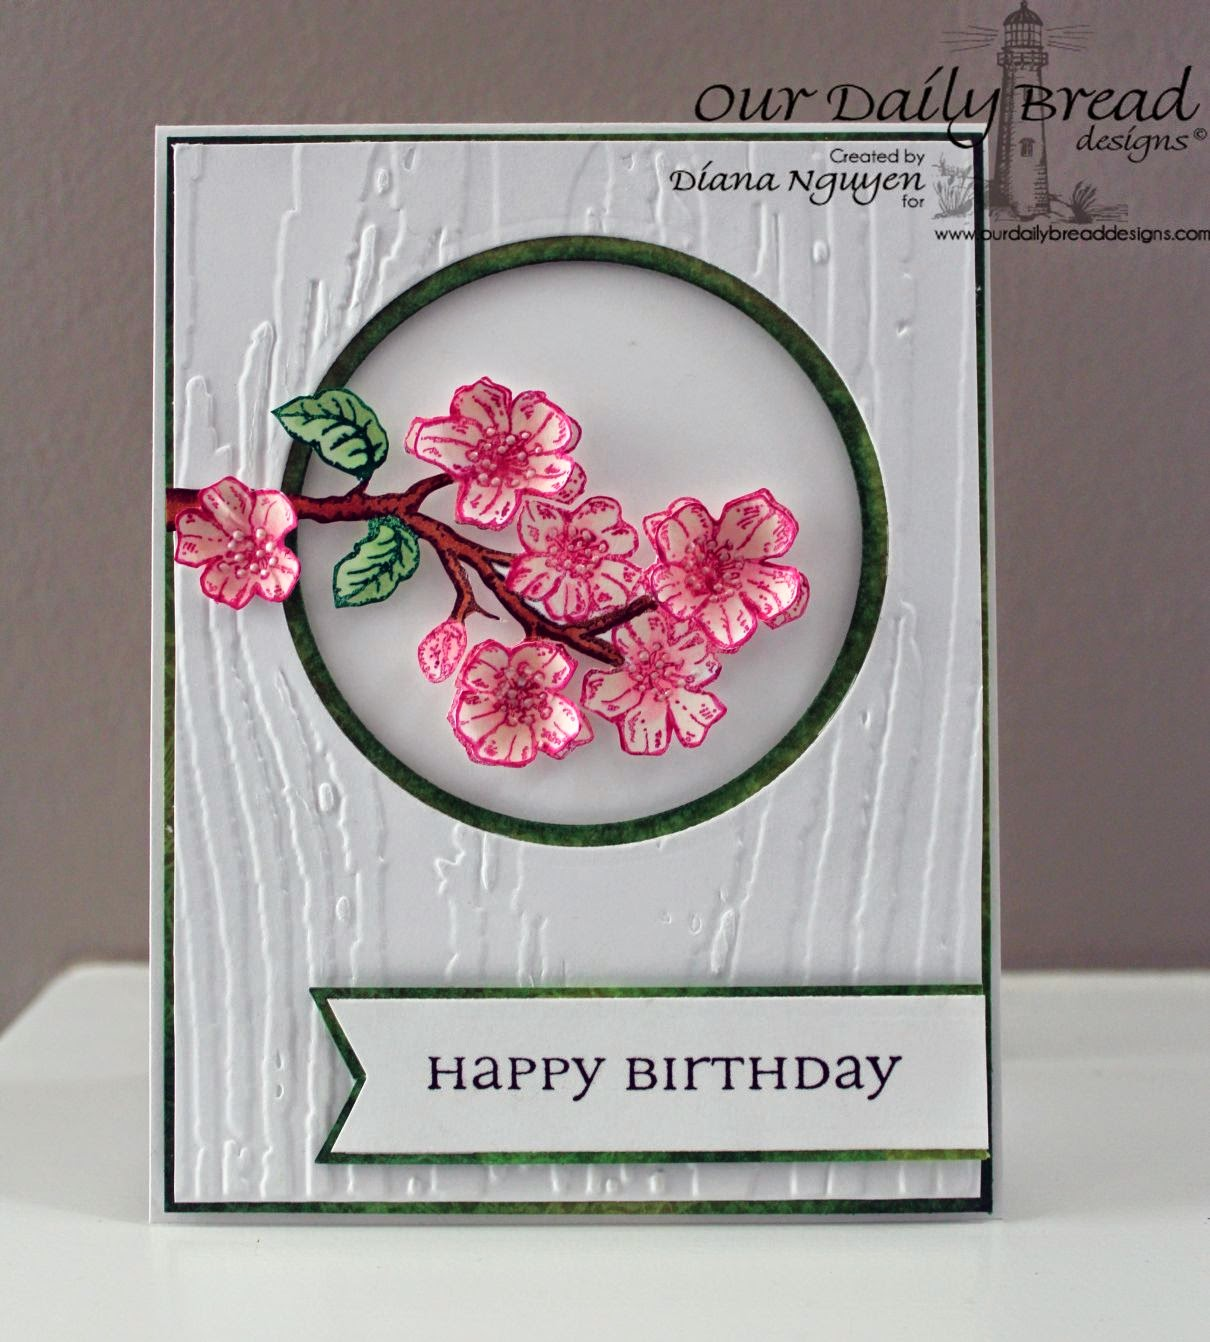 Our Daily Bread Designs, Cherry Blossom, All Occasion Sentiments, Designer-Diana Nguyen